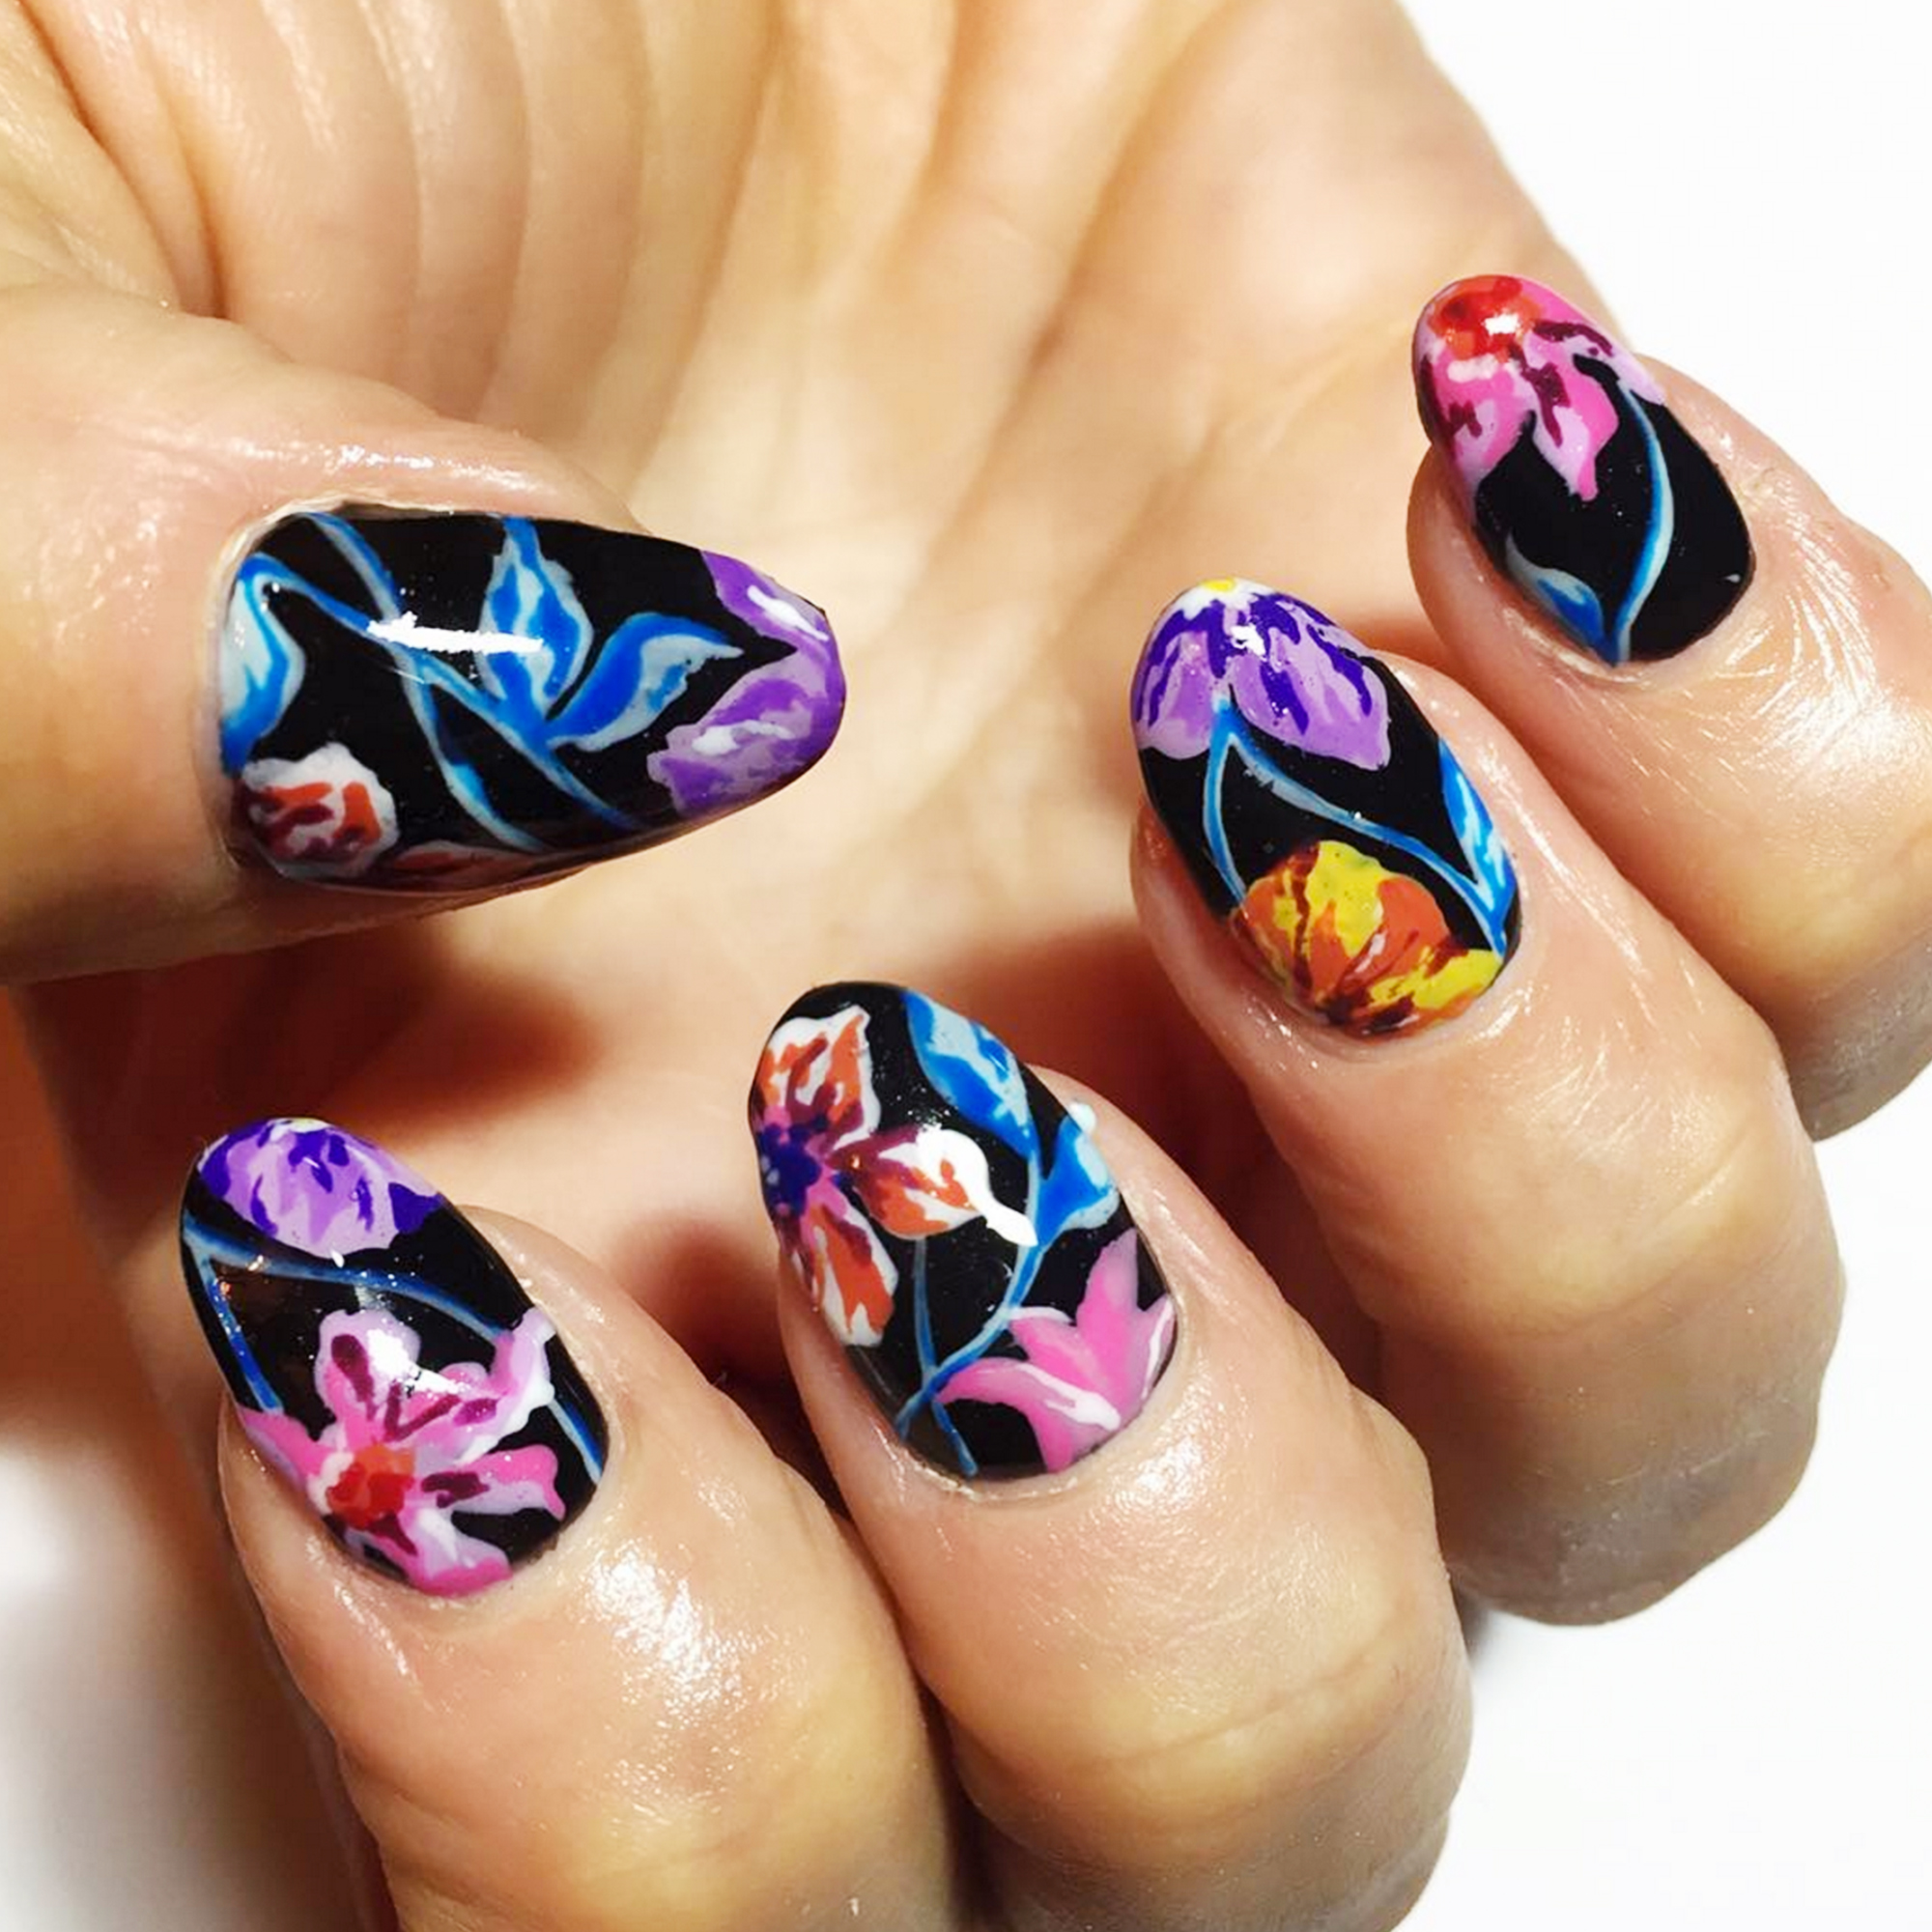 15 Cool Nail Art Designs: 12 Cool Summer Nail Art Designs